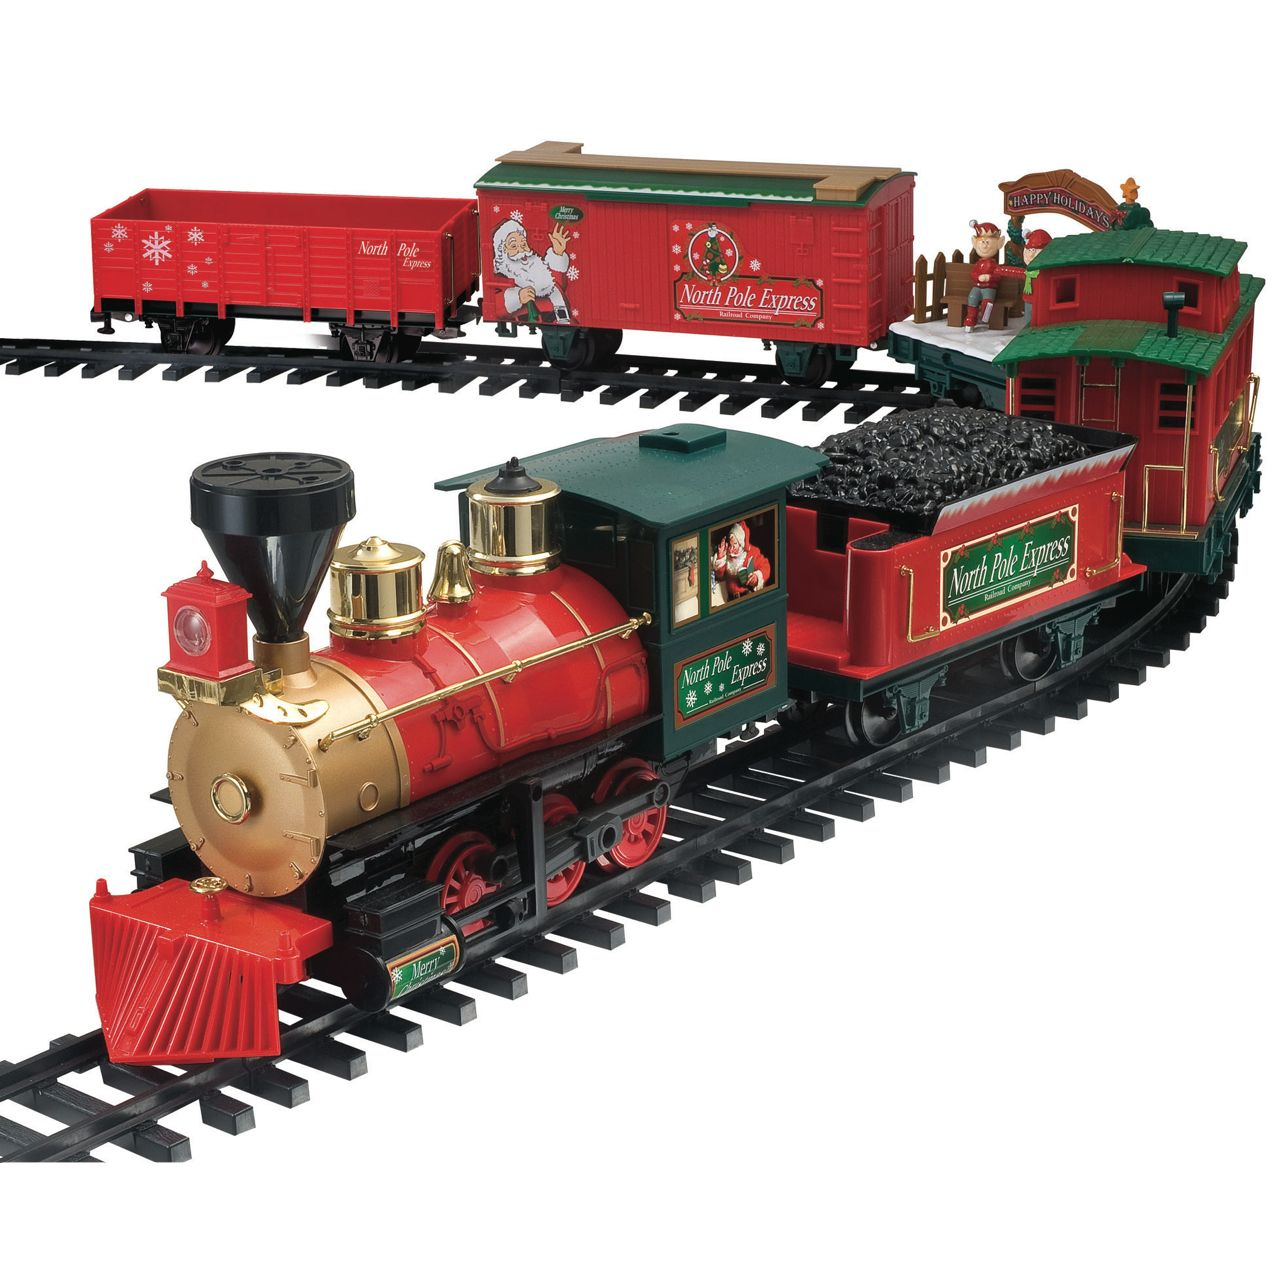 6 Carriage North Pole Express Christmas Train Set | Christmas ...